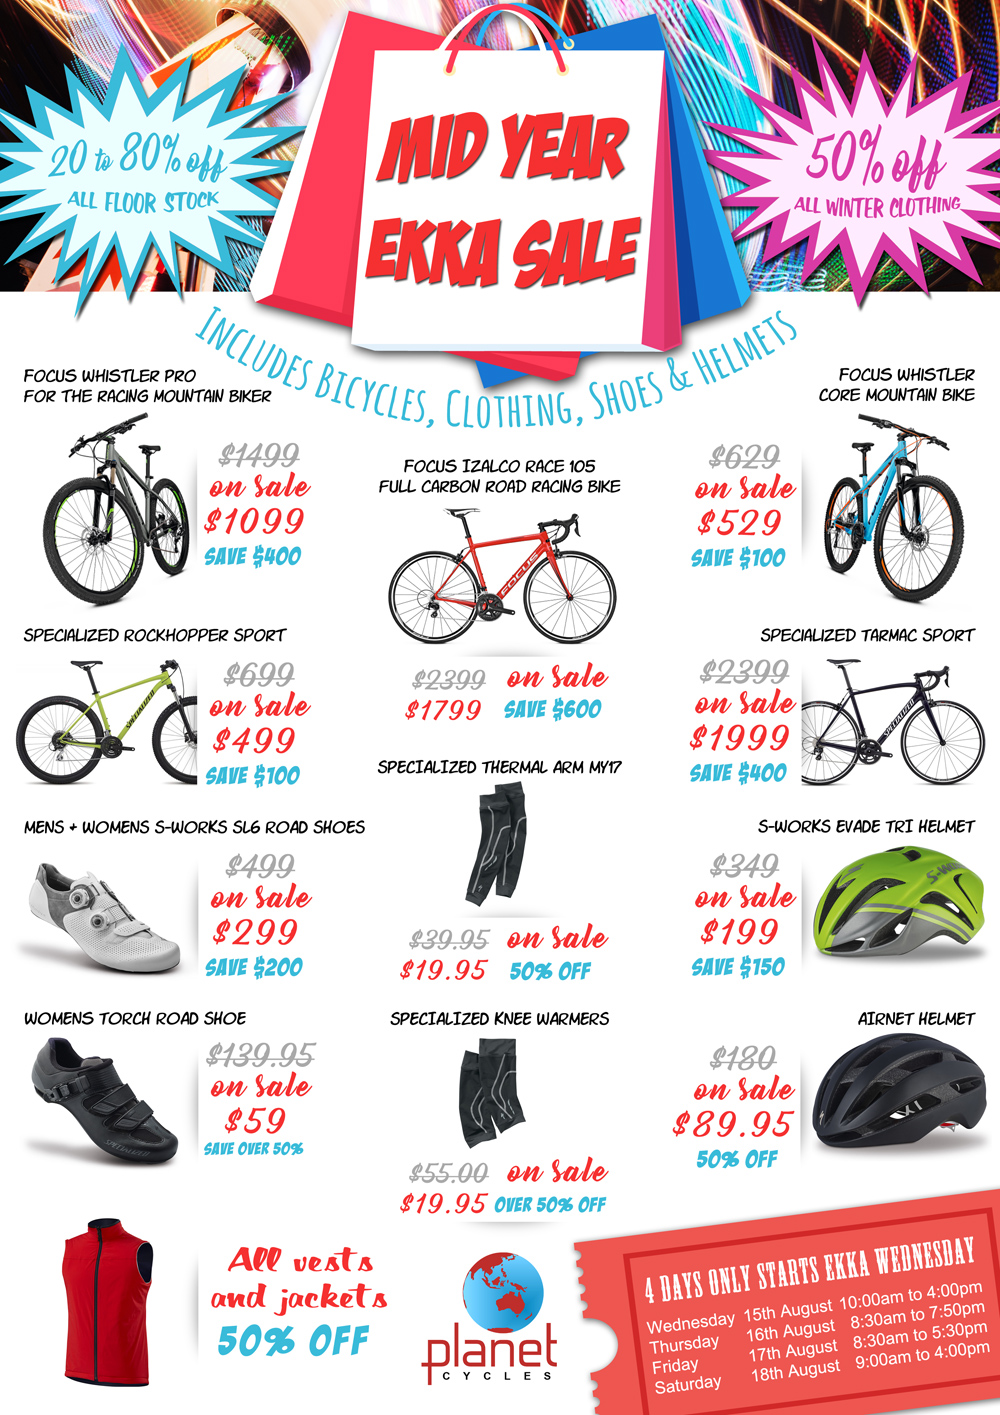 Mid Year Ekka Sale, 4 days only starting Wednesday 15th August